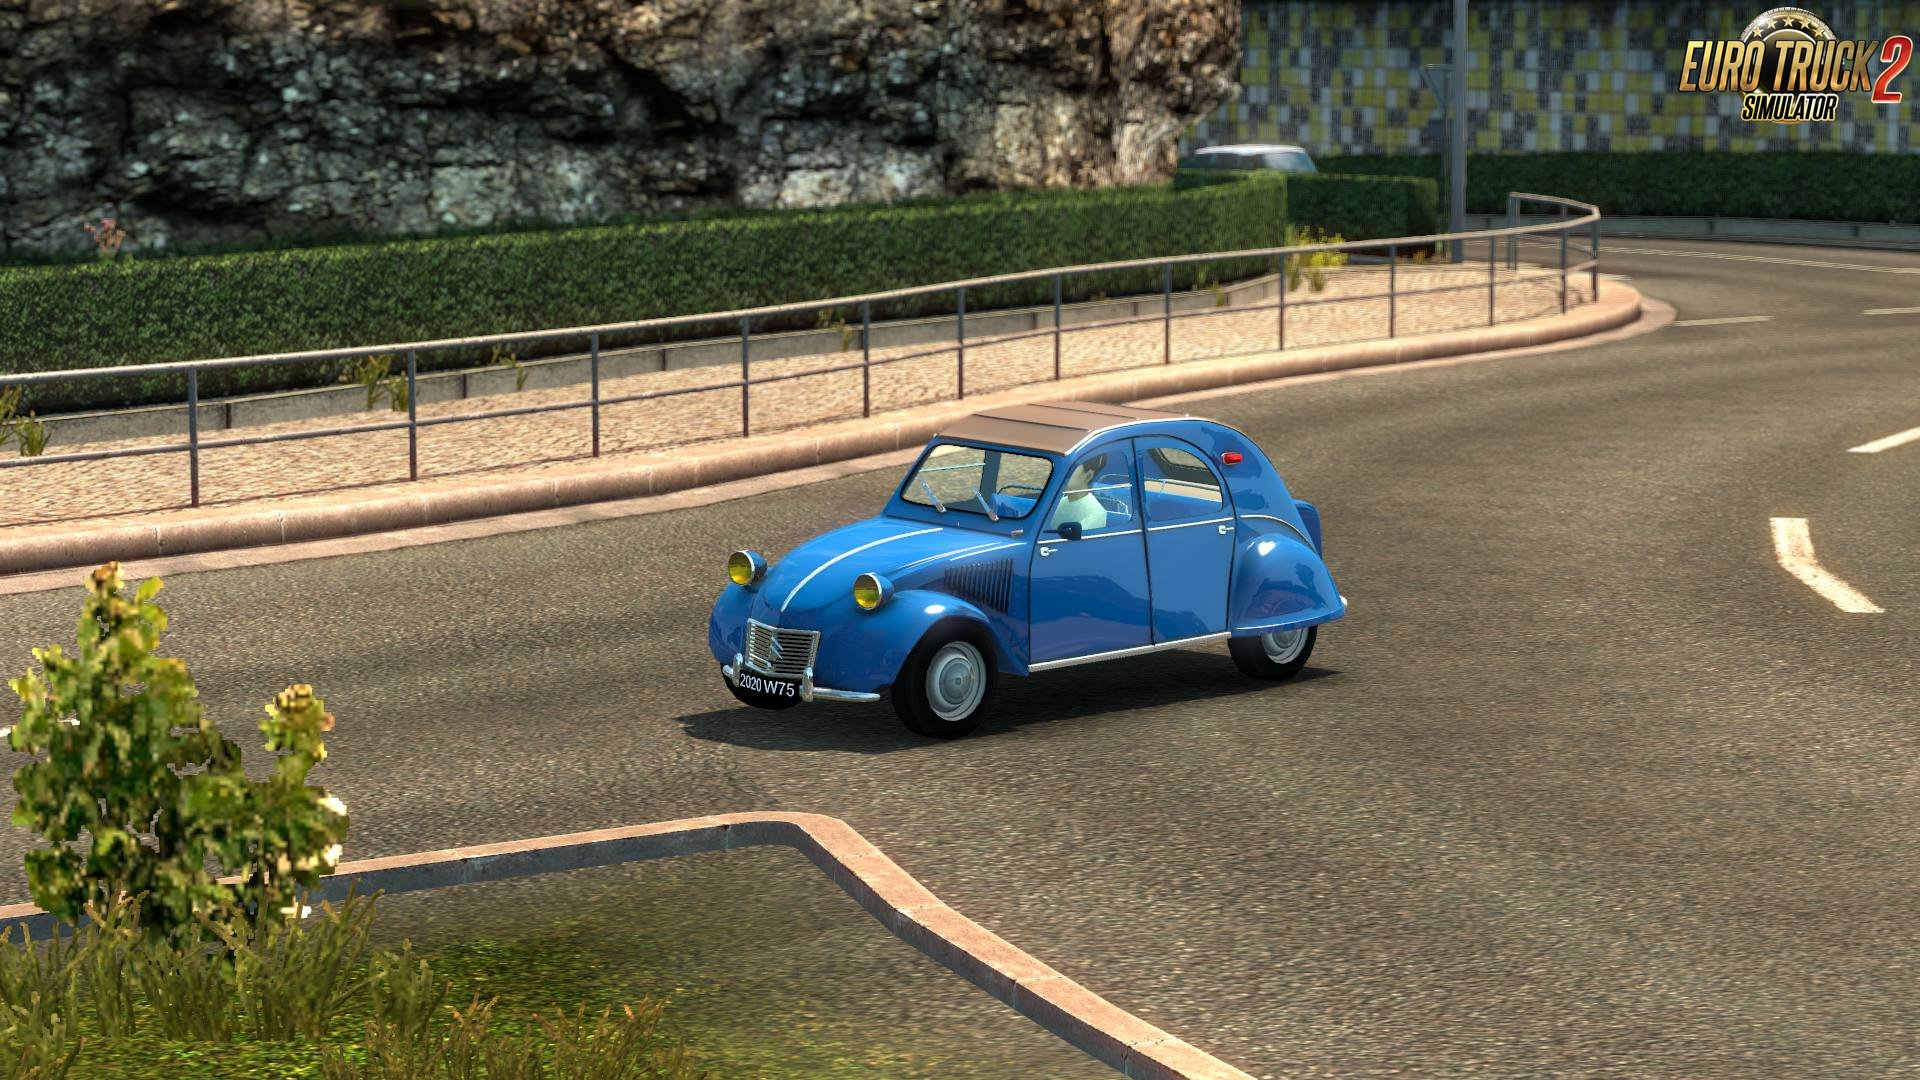 Citroën 2Cv Reworked v3.0 in Ai Traffic